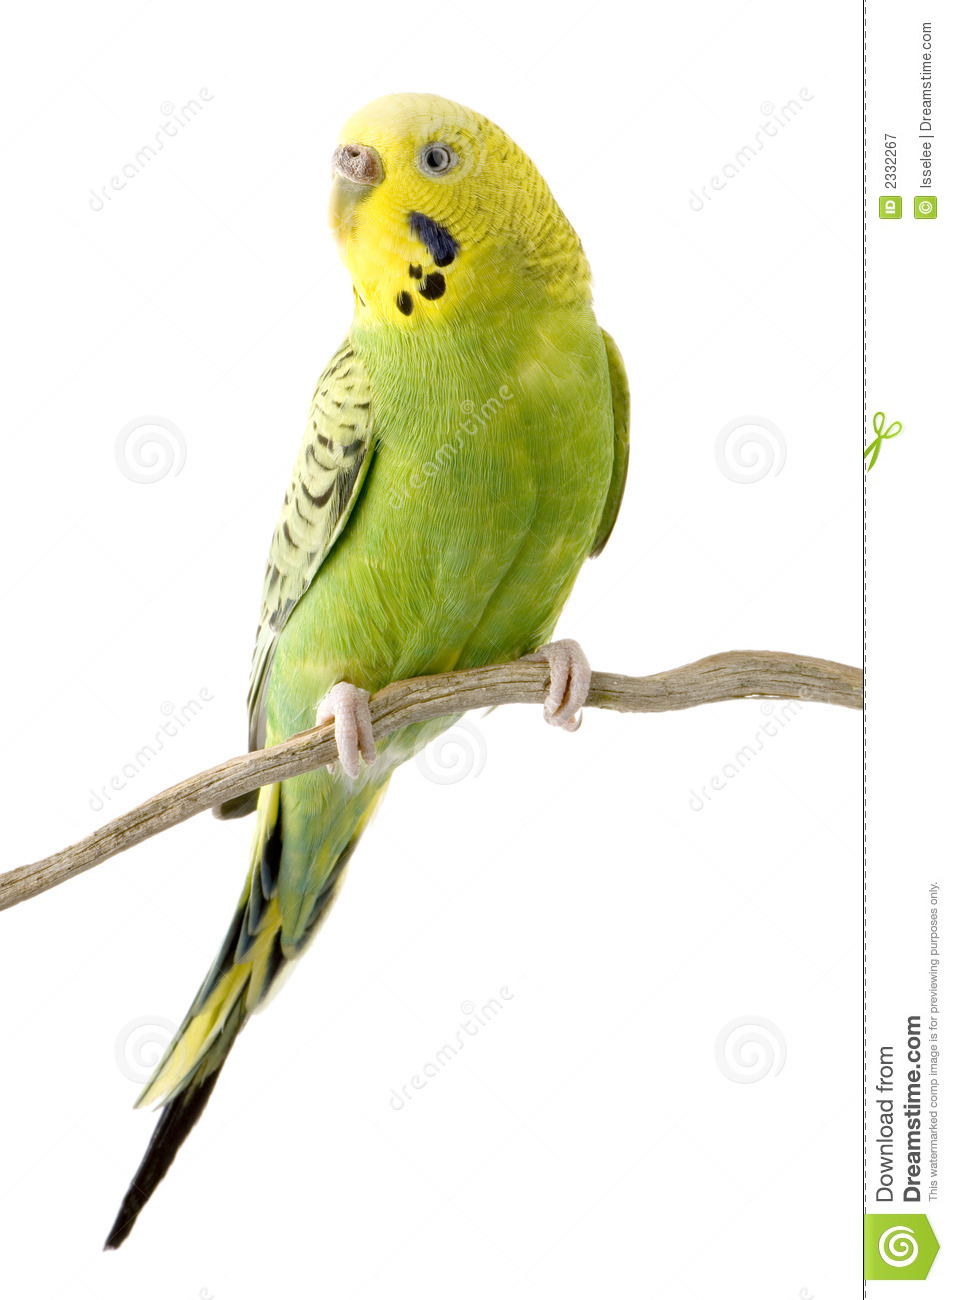 Yellow clipart parakeet Pair cliparts Clipart Parakeets Of